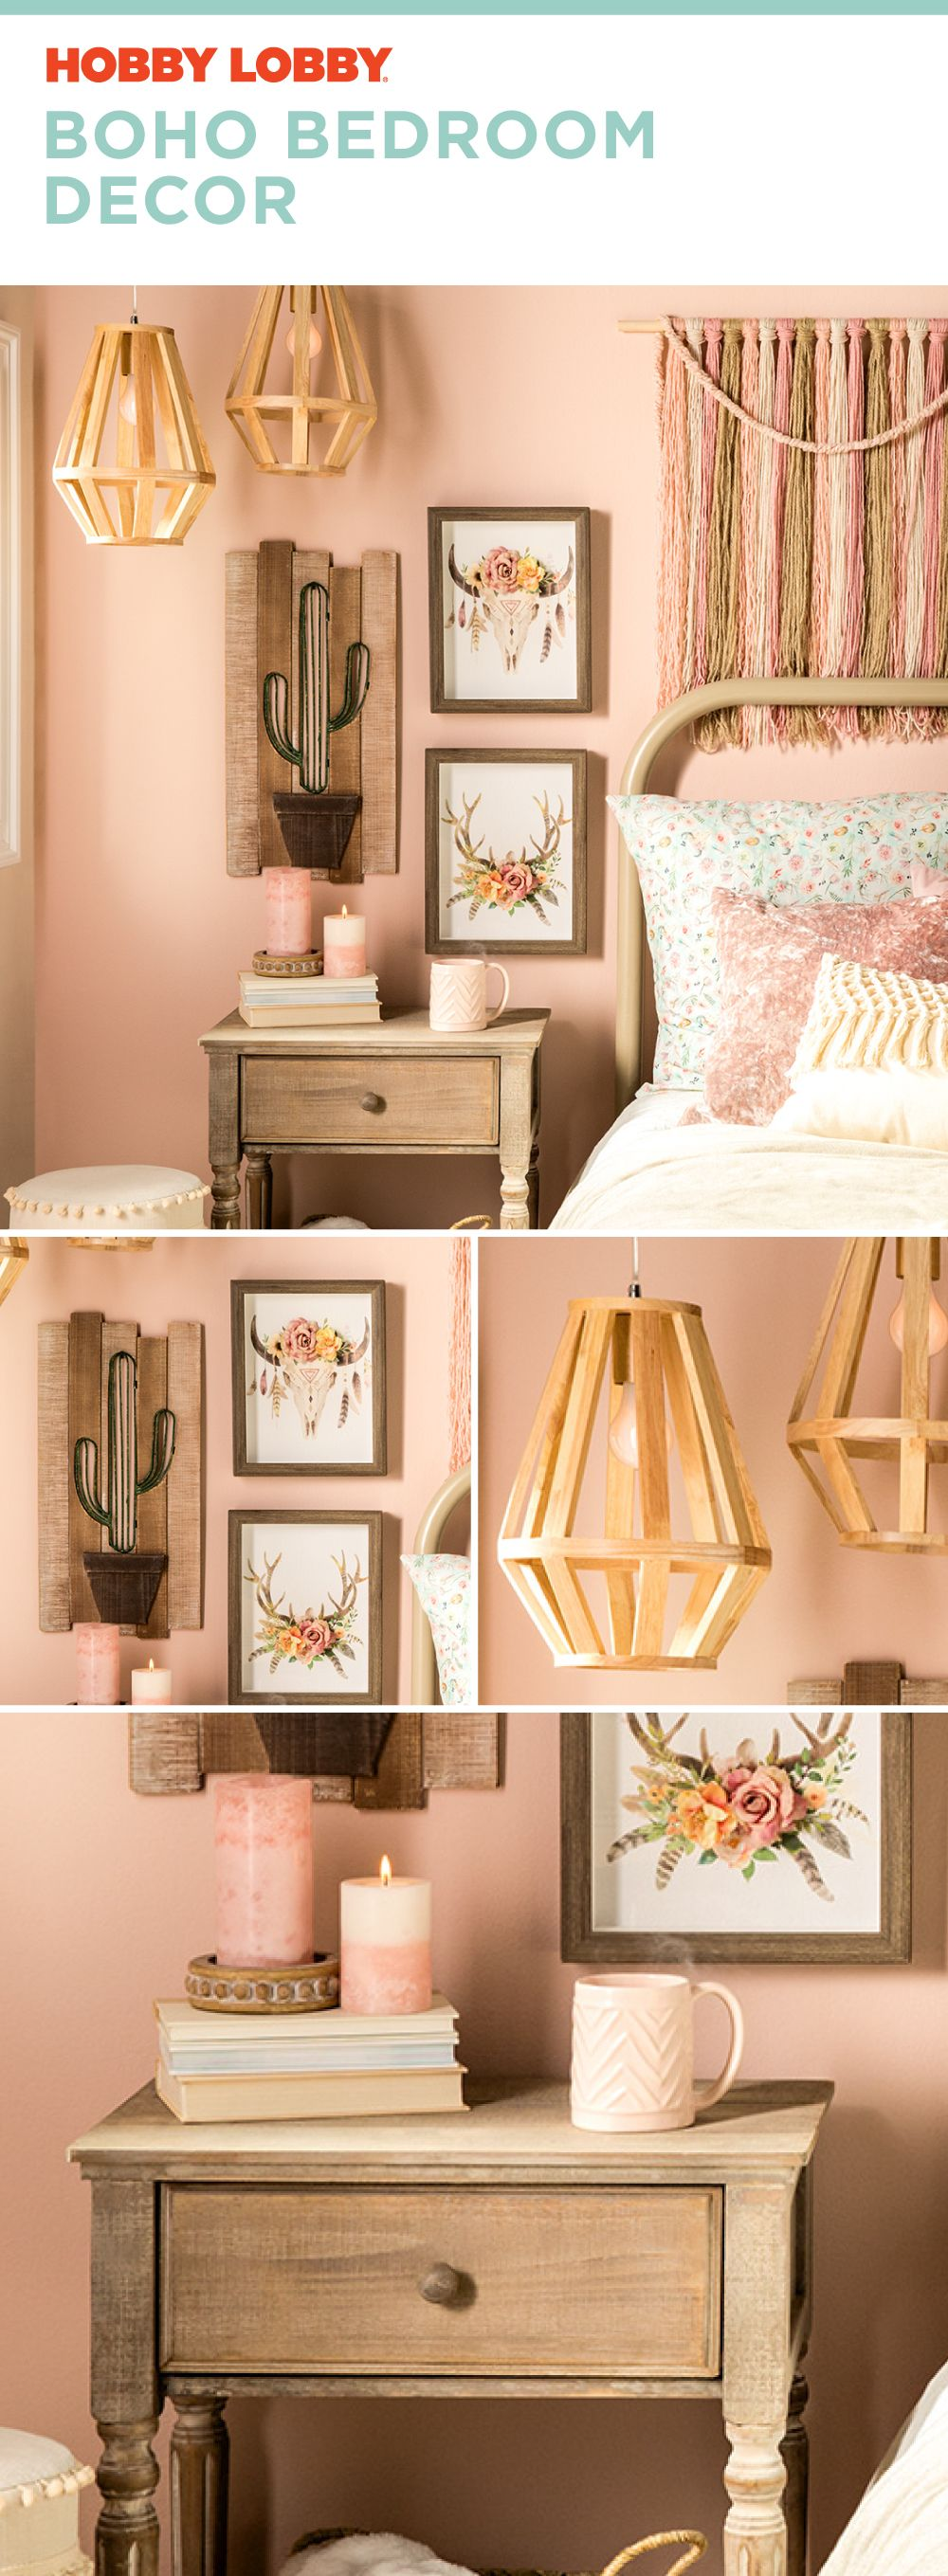 This Boho bedroom is all we need. (With images) | Kids ...